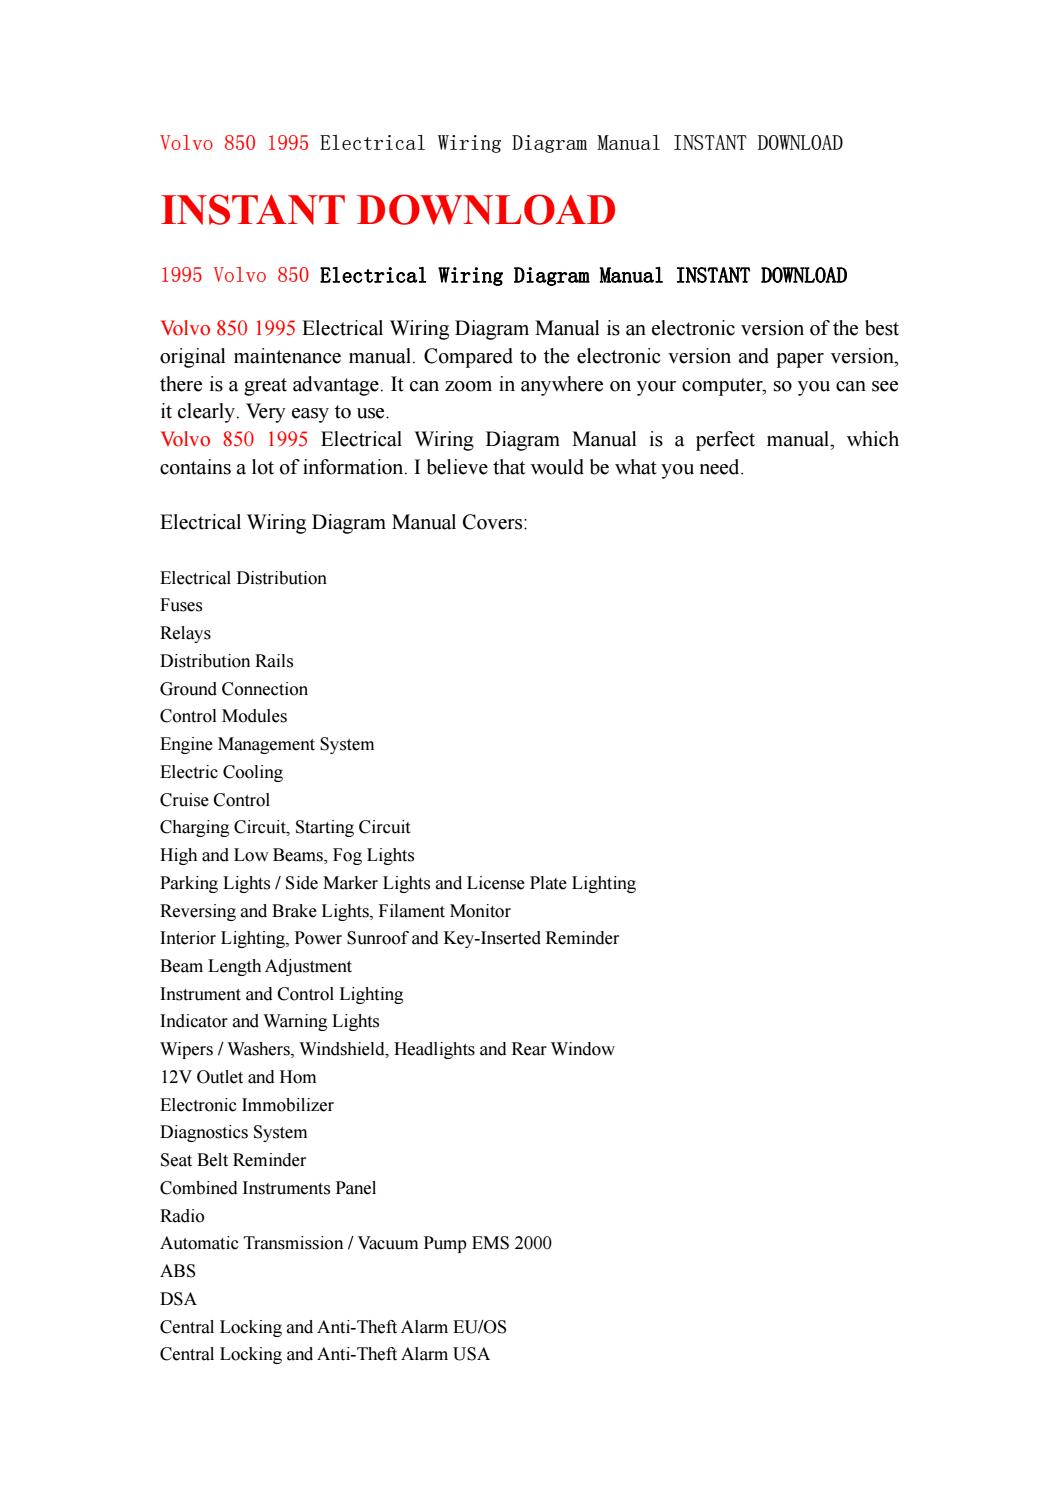 hight resolution of volvo 850 1995 electrical wiring diagram manual instant download by ksjefkmsef87 issuu